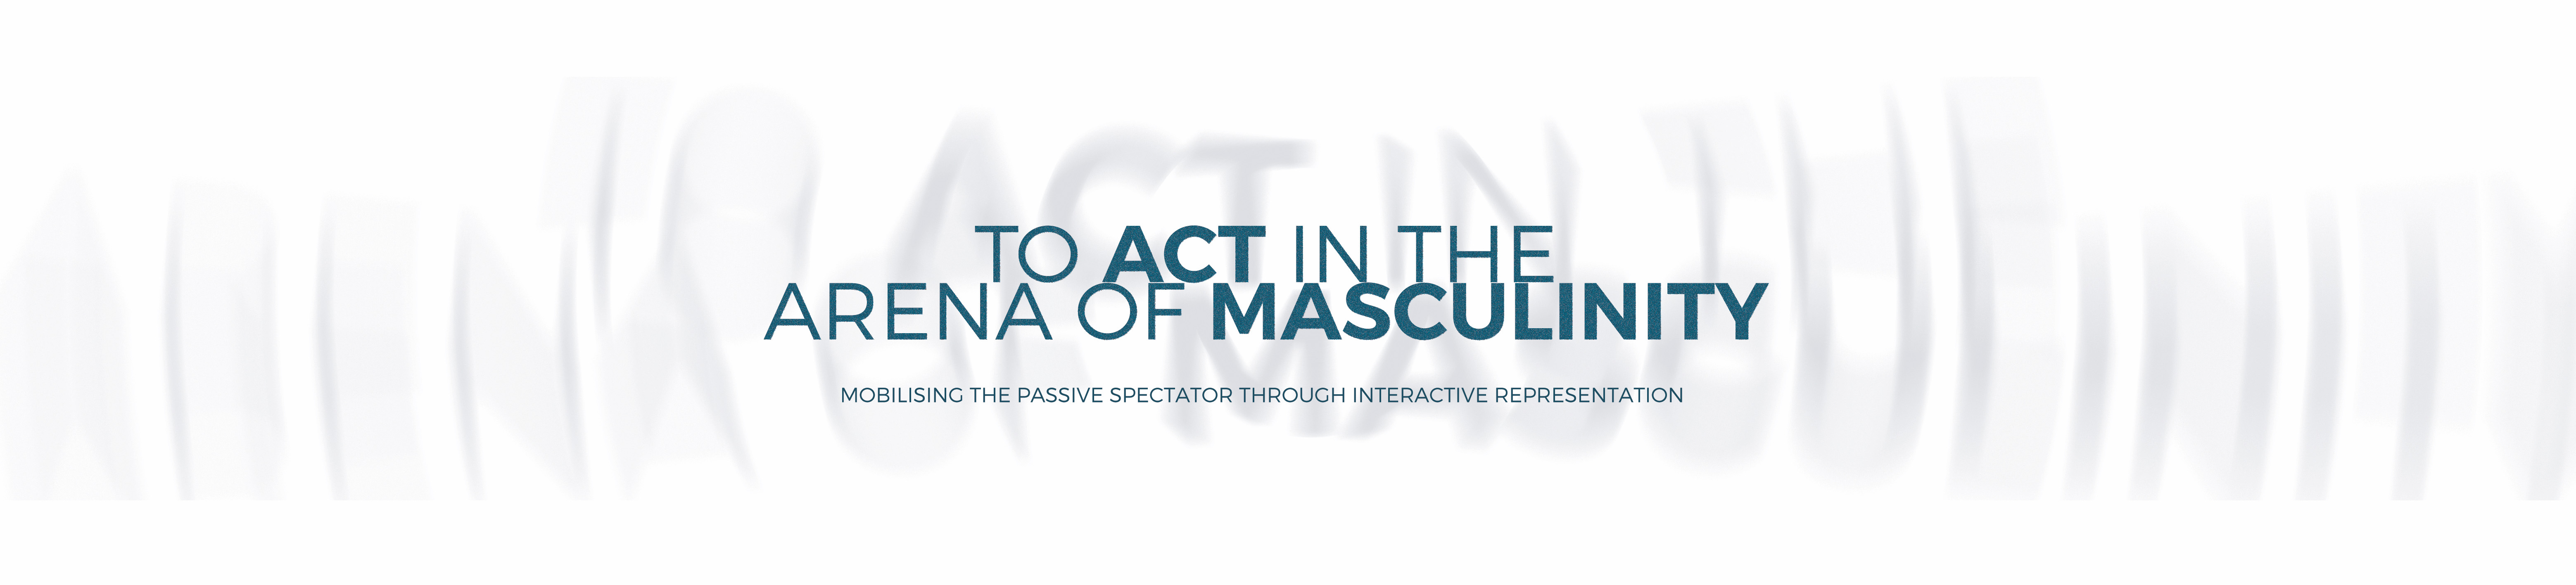 To Act in the Arena of Masculinity